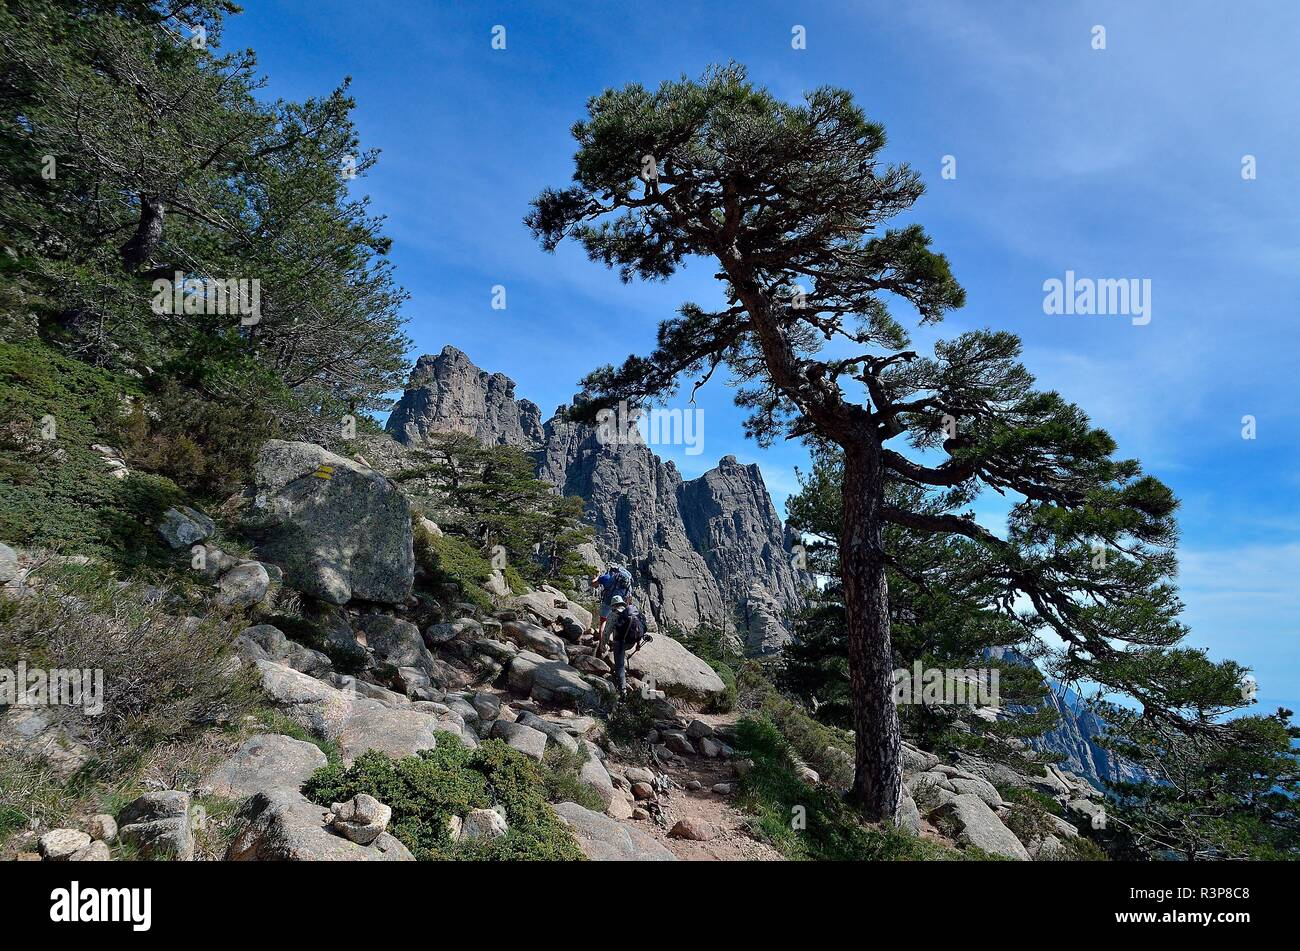 Hiking on the GR20 towards the Bavella Needles, Alta-Rocca Region, Corsica, France - Stock Image